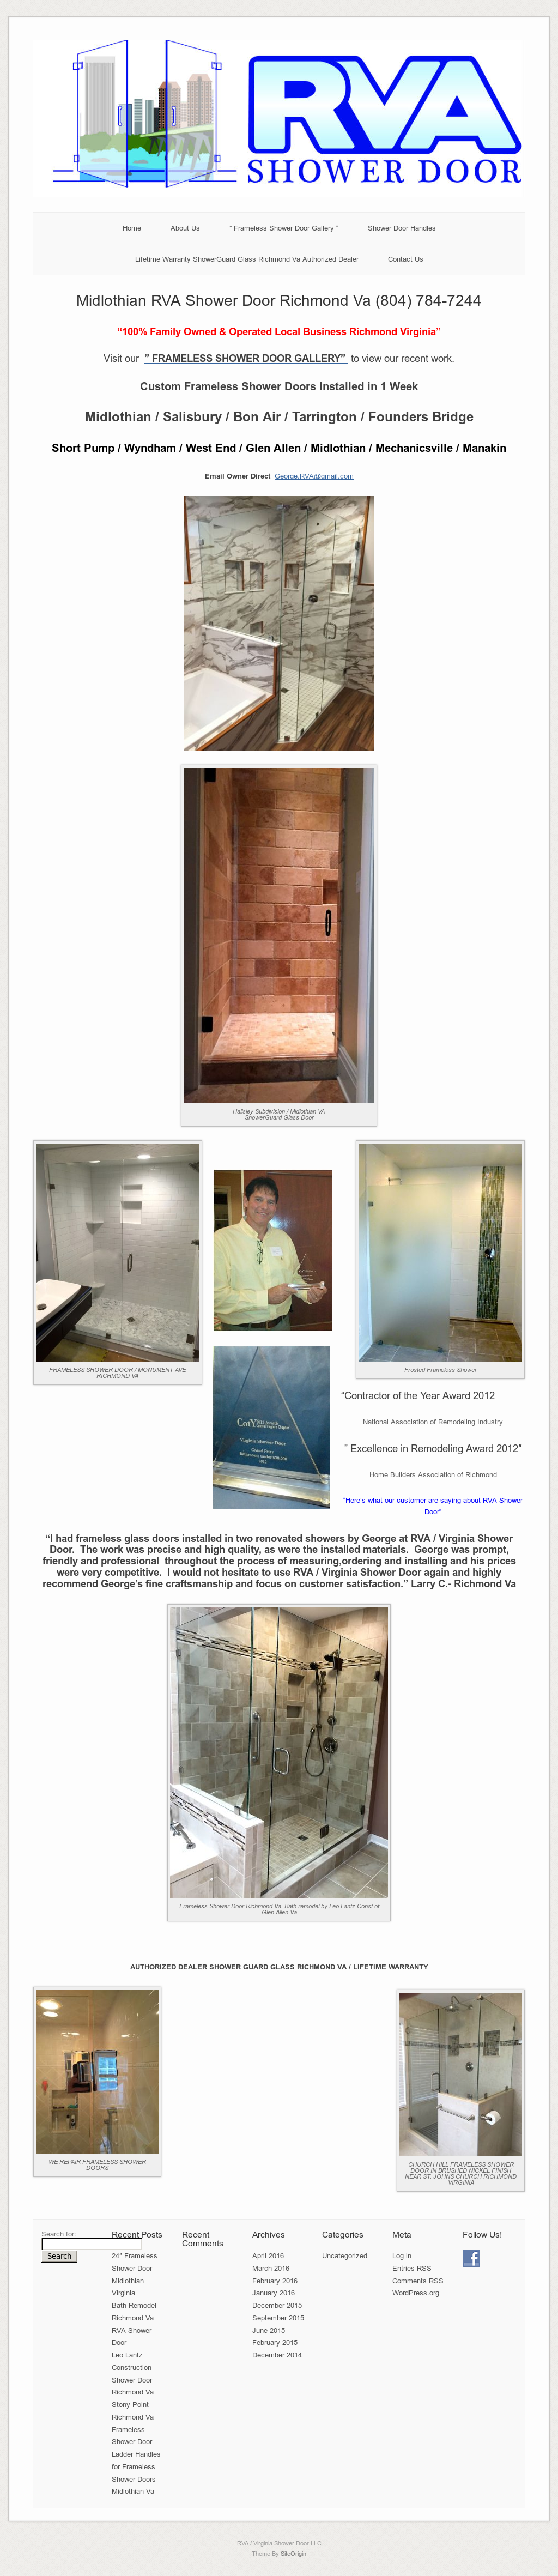 Richmondshowerdoorva Competitors Revenue And Employees Owler - Bathroom remodeling midlothian va